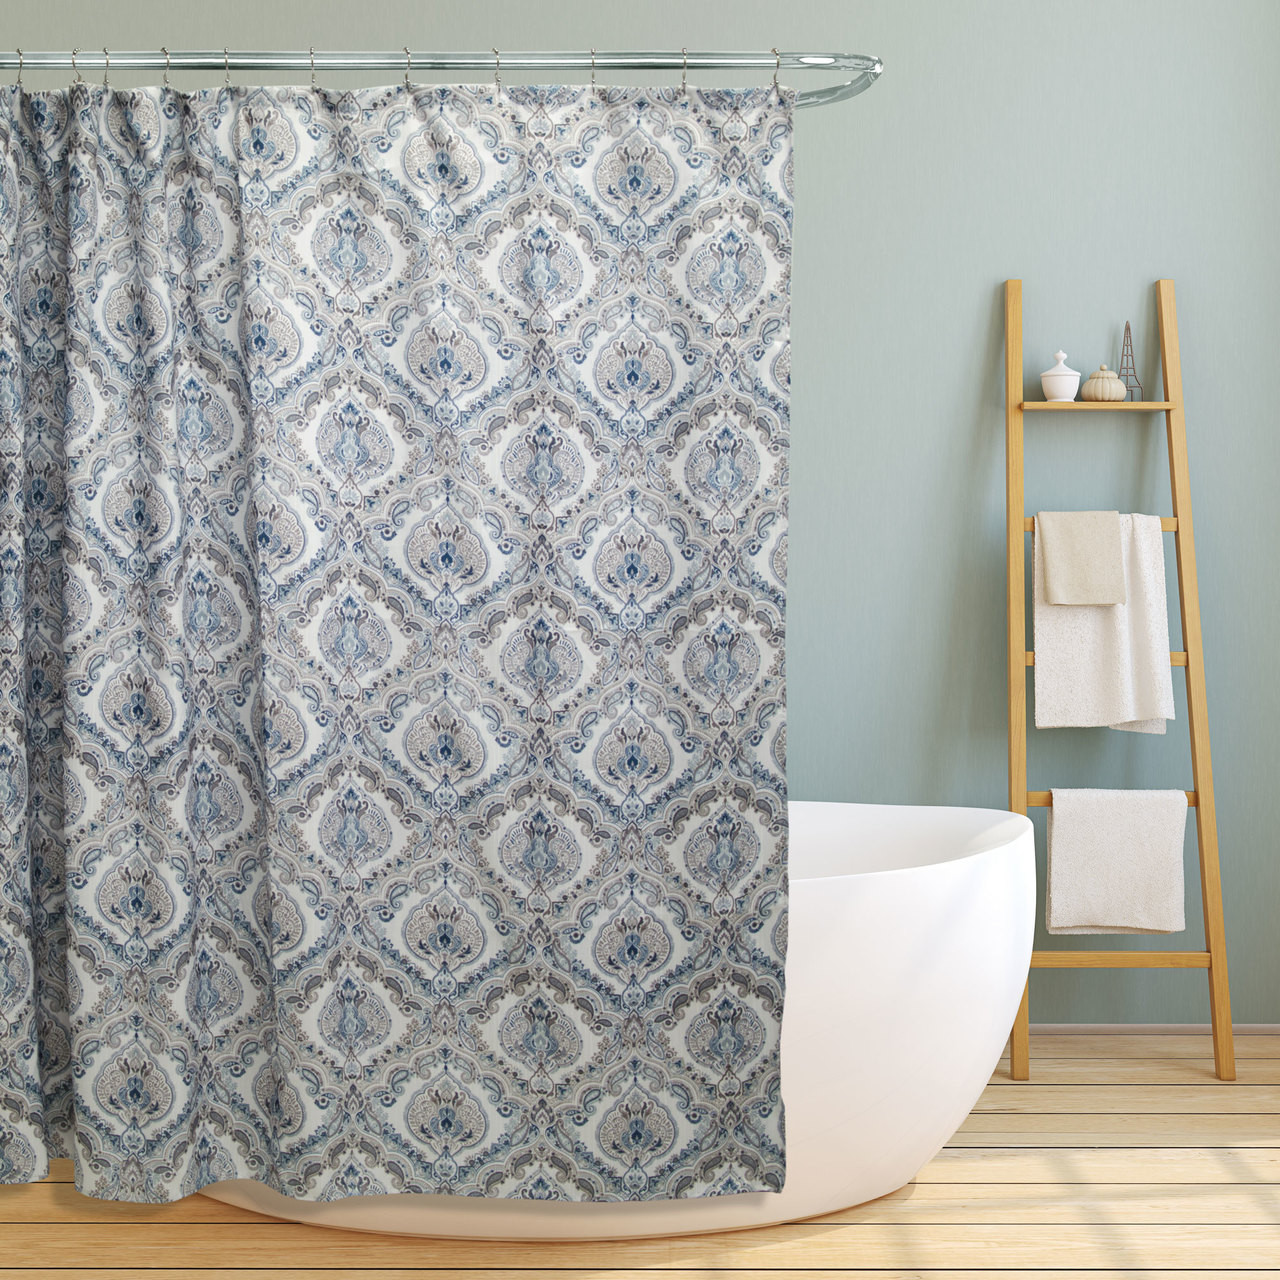 iron your steel white curtains pattern striped liner bar shower for curtain inspiring table grey pole area fabric brown